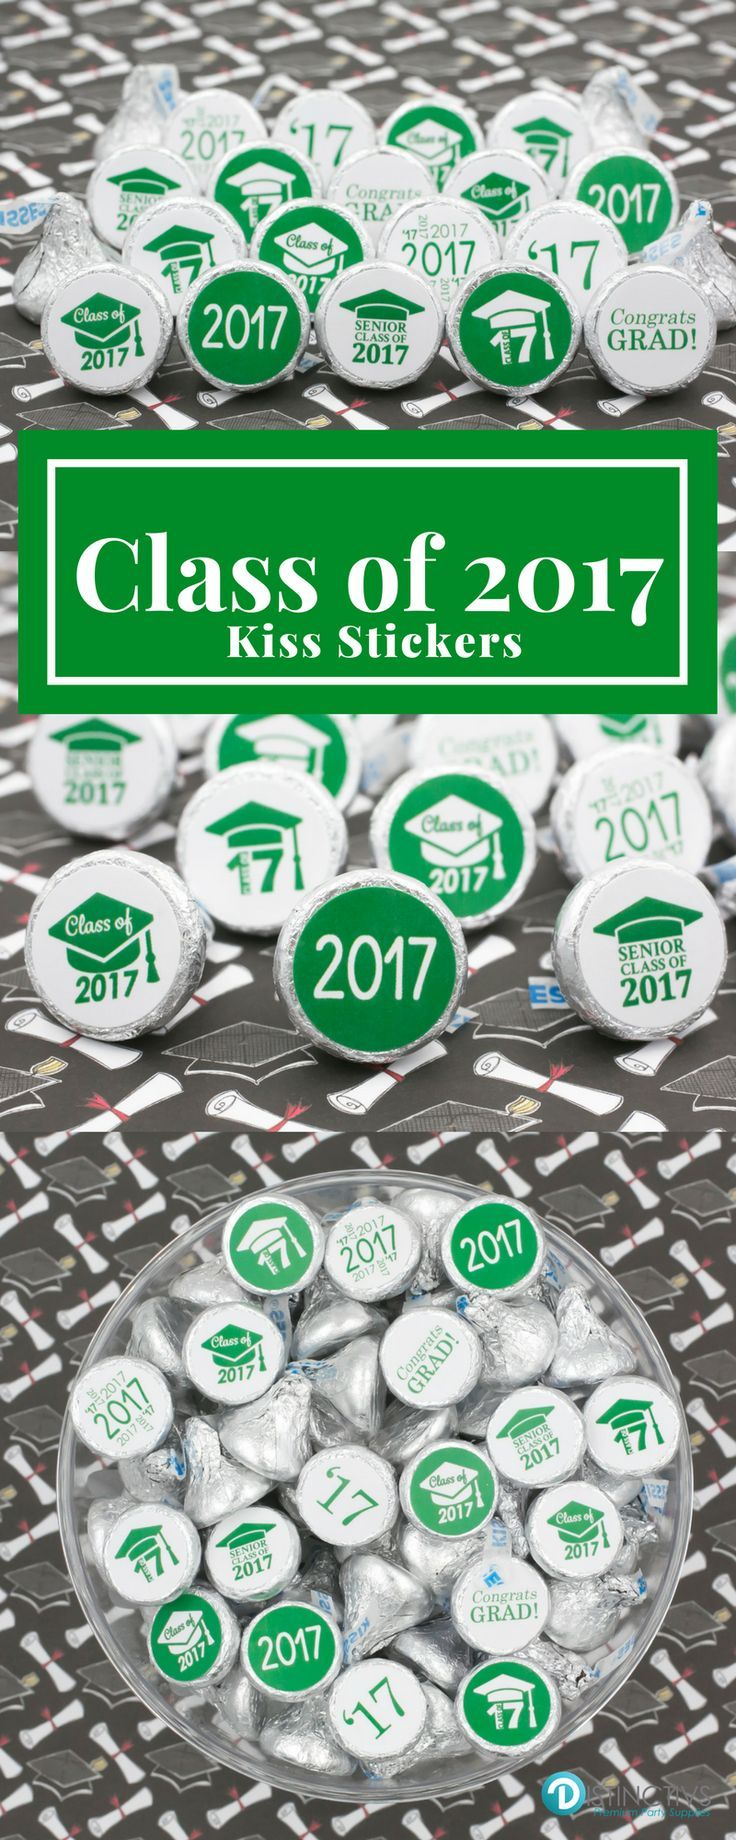 Add these Green Class of 2017 Graduation Party Favor Stickers to a Hershey's Kiss for a simple and easy party favor or table decoration.